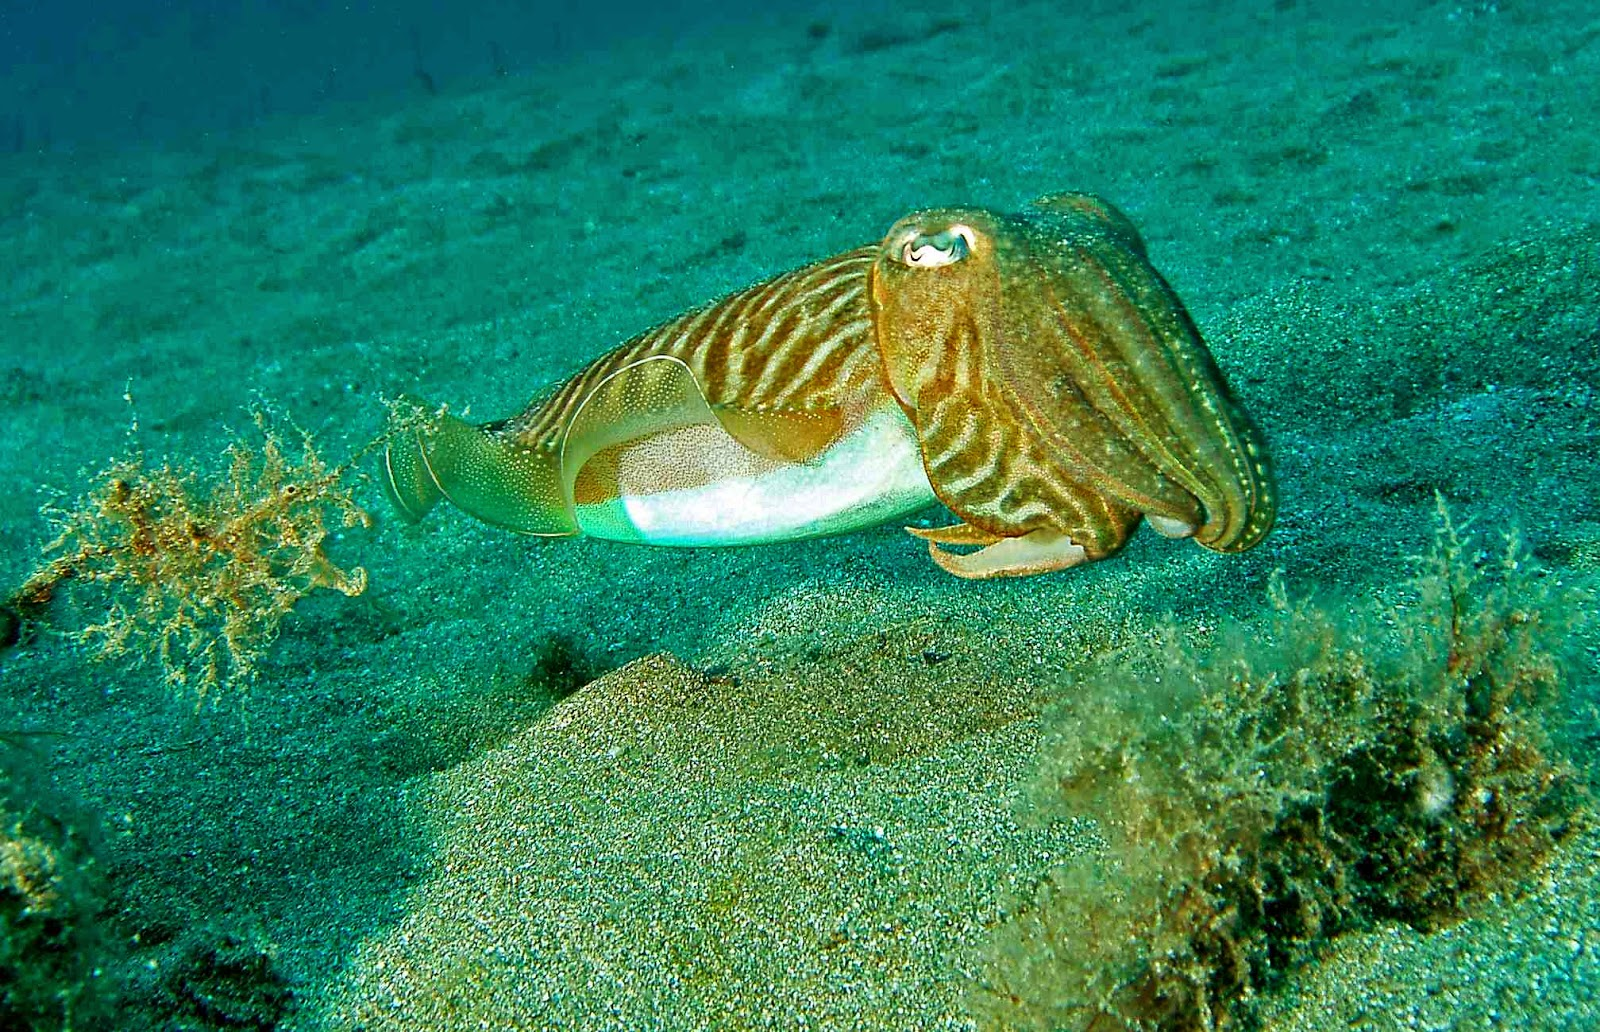 Cuttlefish fishing from shore with rod ocean bounty for Urine smells like fish after eating fish